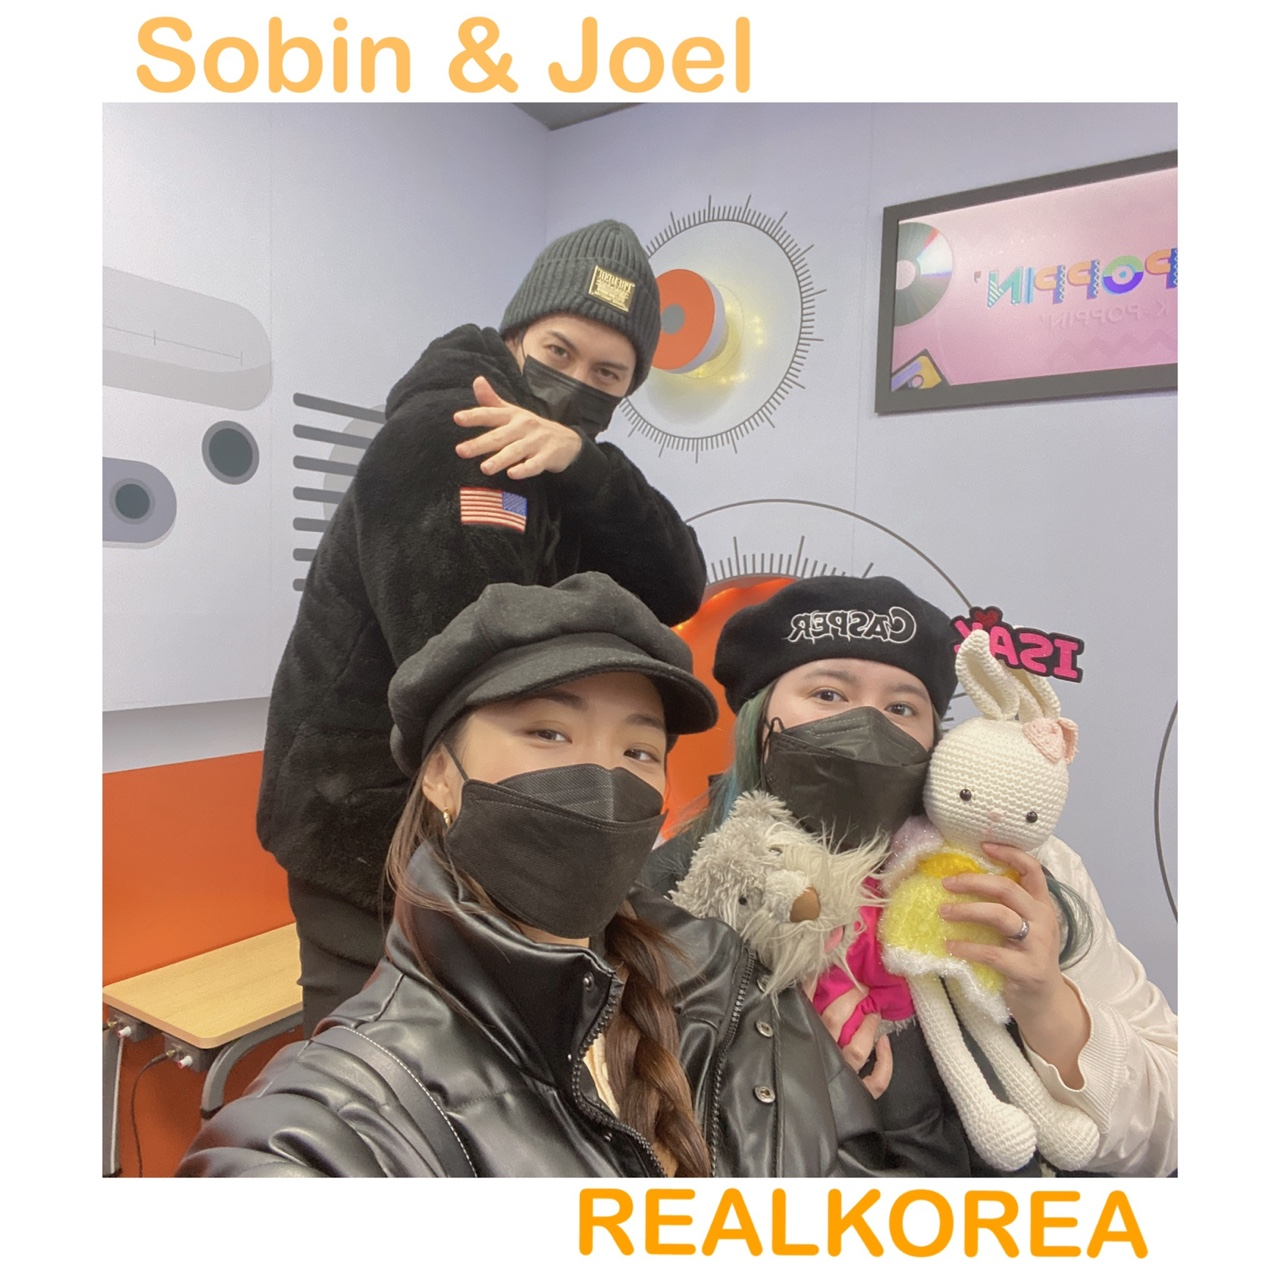 [Tuesday - REAL KOREA] With 수빈 & 조엘 Oct.19th